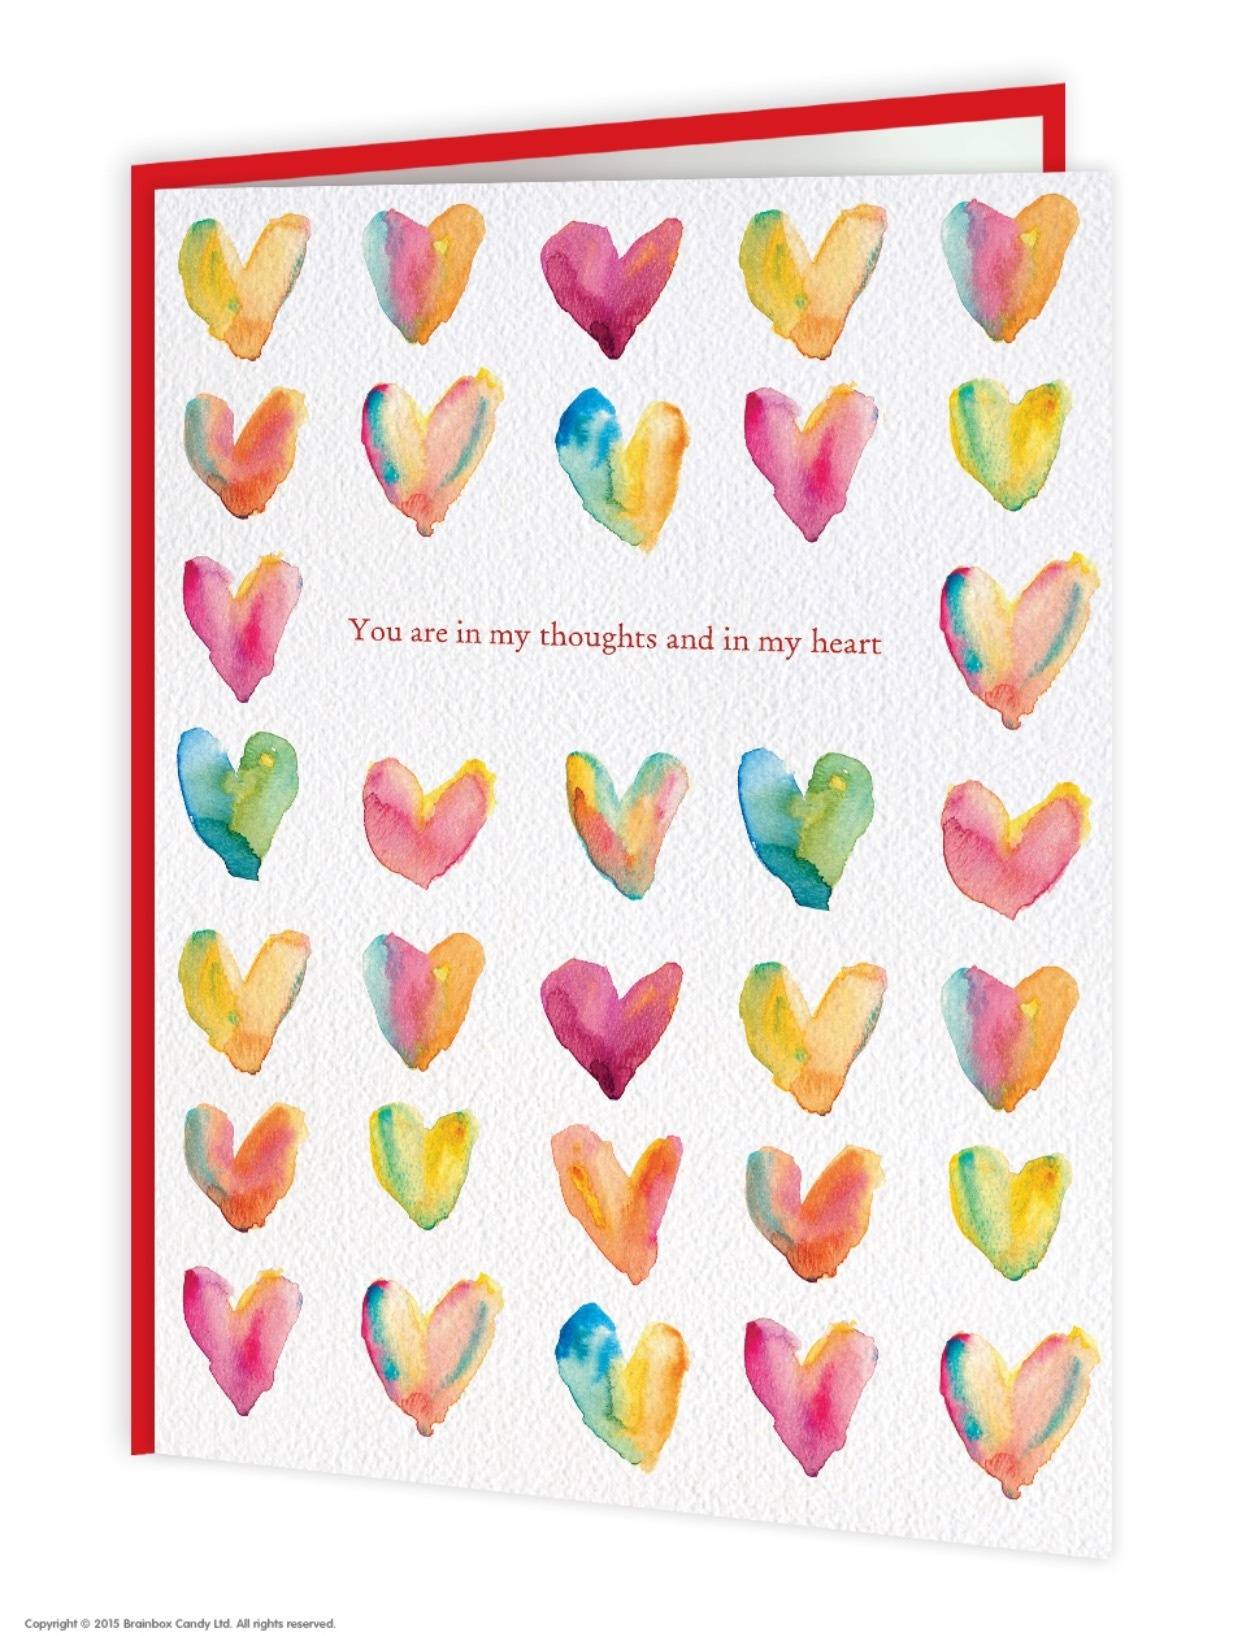 Brain Box Candy Thinking Of You Greetings Card Lucy Lous